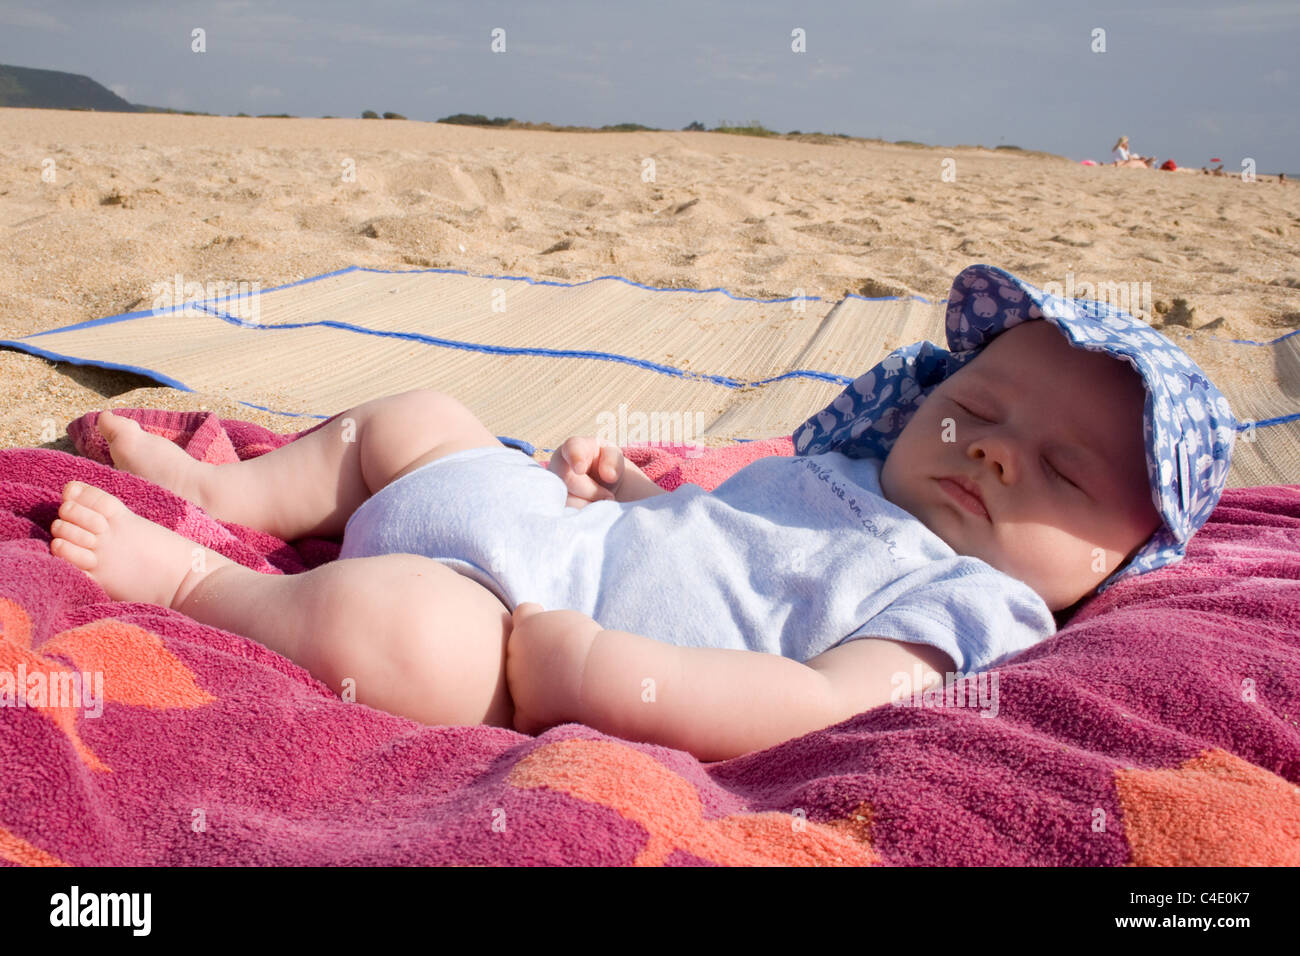 3 month old baby having his nap on the beach Stock Photo